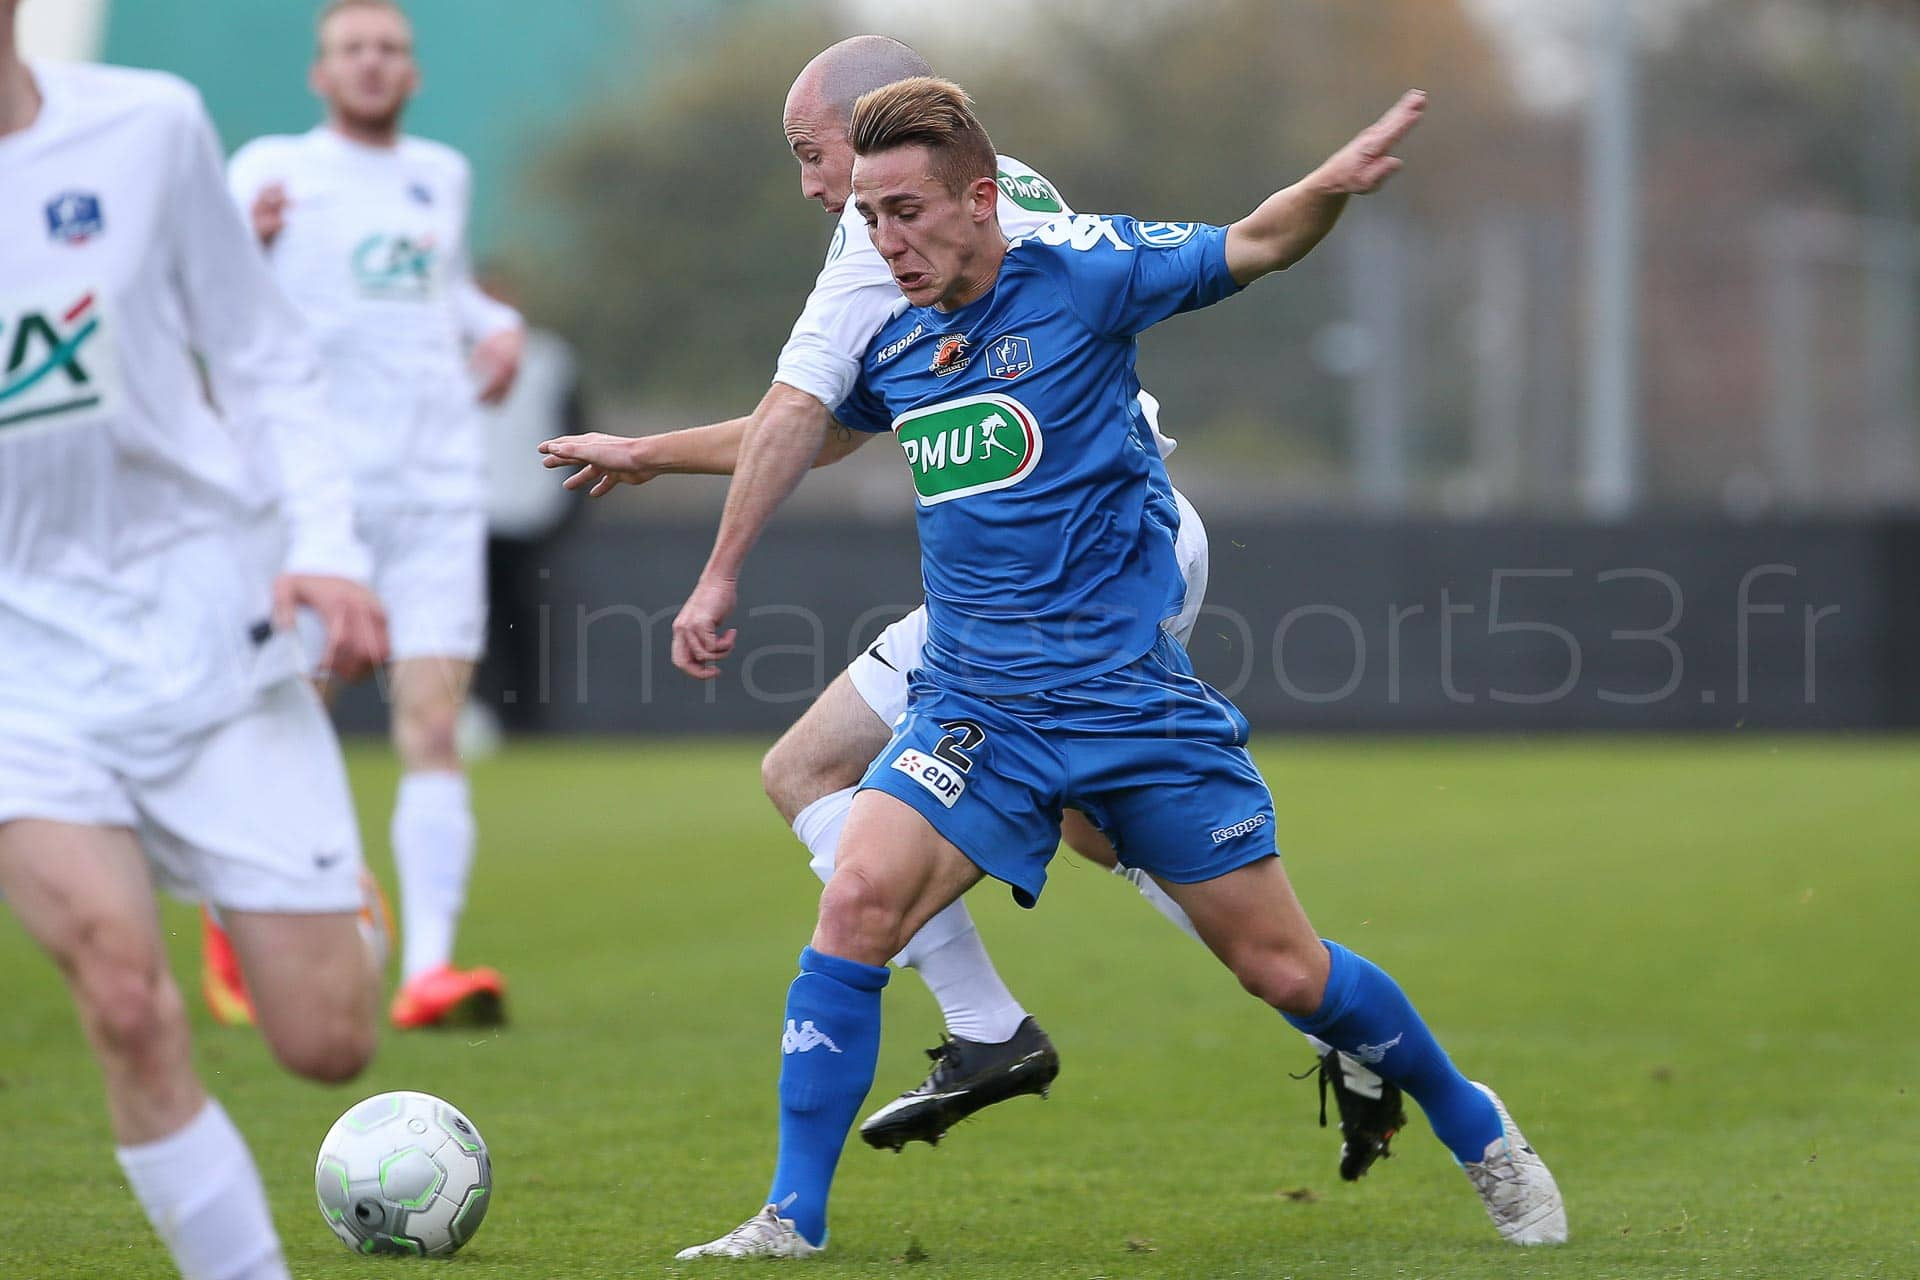 NG-CoupedeFrance-1415-T07-Laval-SaintBerthevin_7